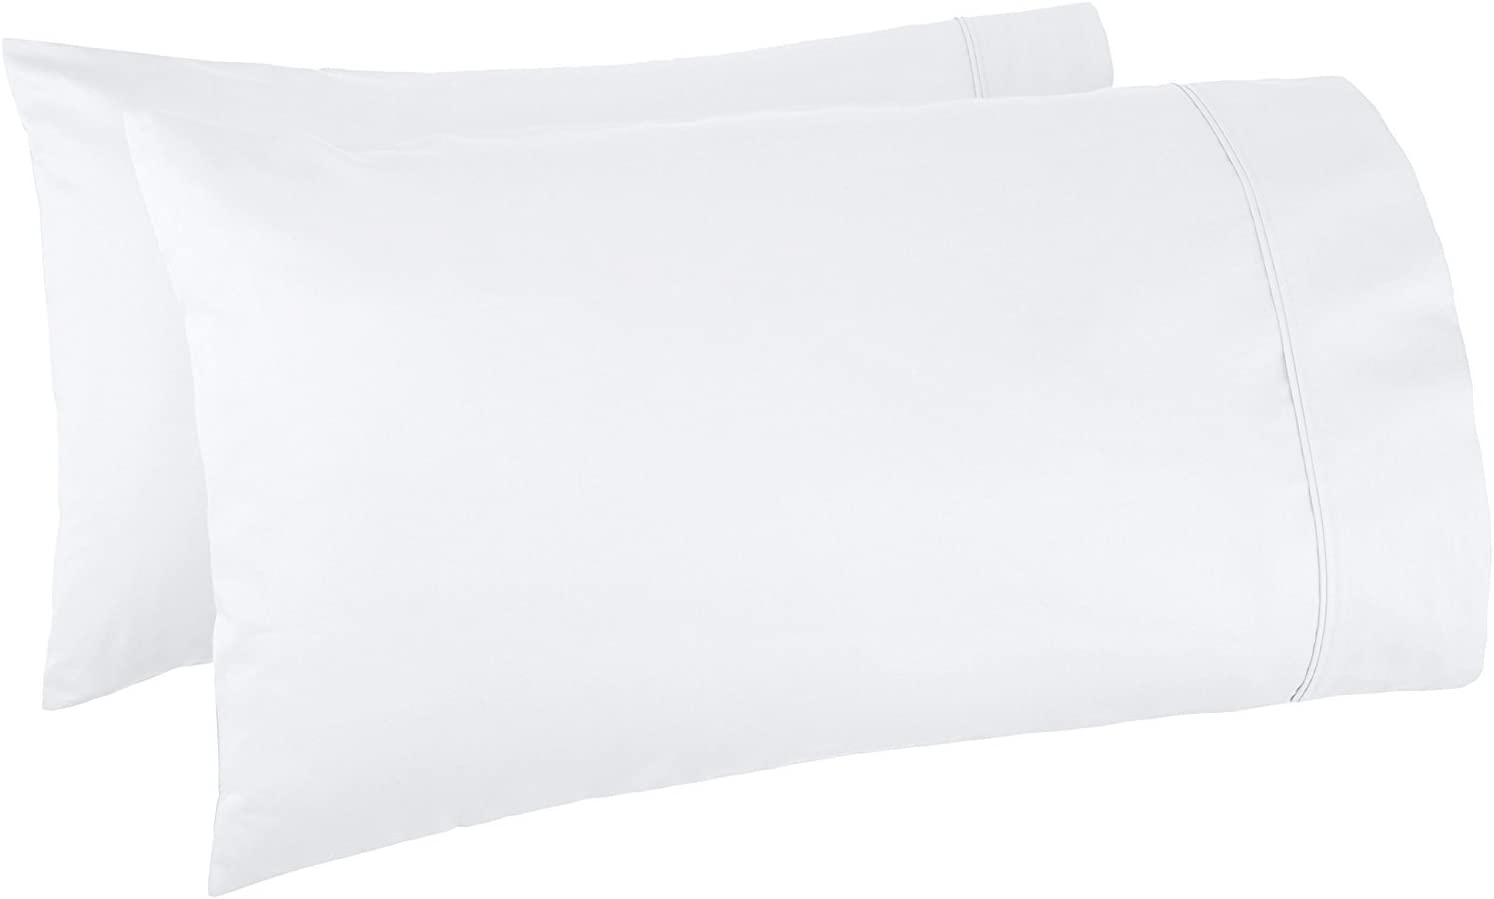 500 Thread Count 100% Egyptian Cotton Pillow Cases, White Standard Pillowcase Set of 2, Long-Staple Combed Pure Natural 100% Cotton Pillows for Sleeping, Soft & Silky Sateen Weave Bed Pillow Cover.